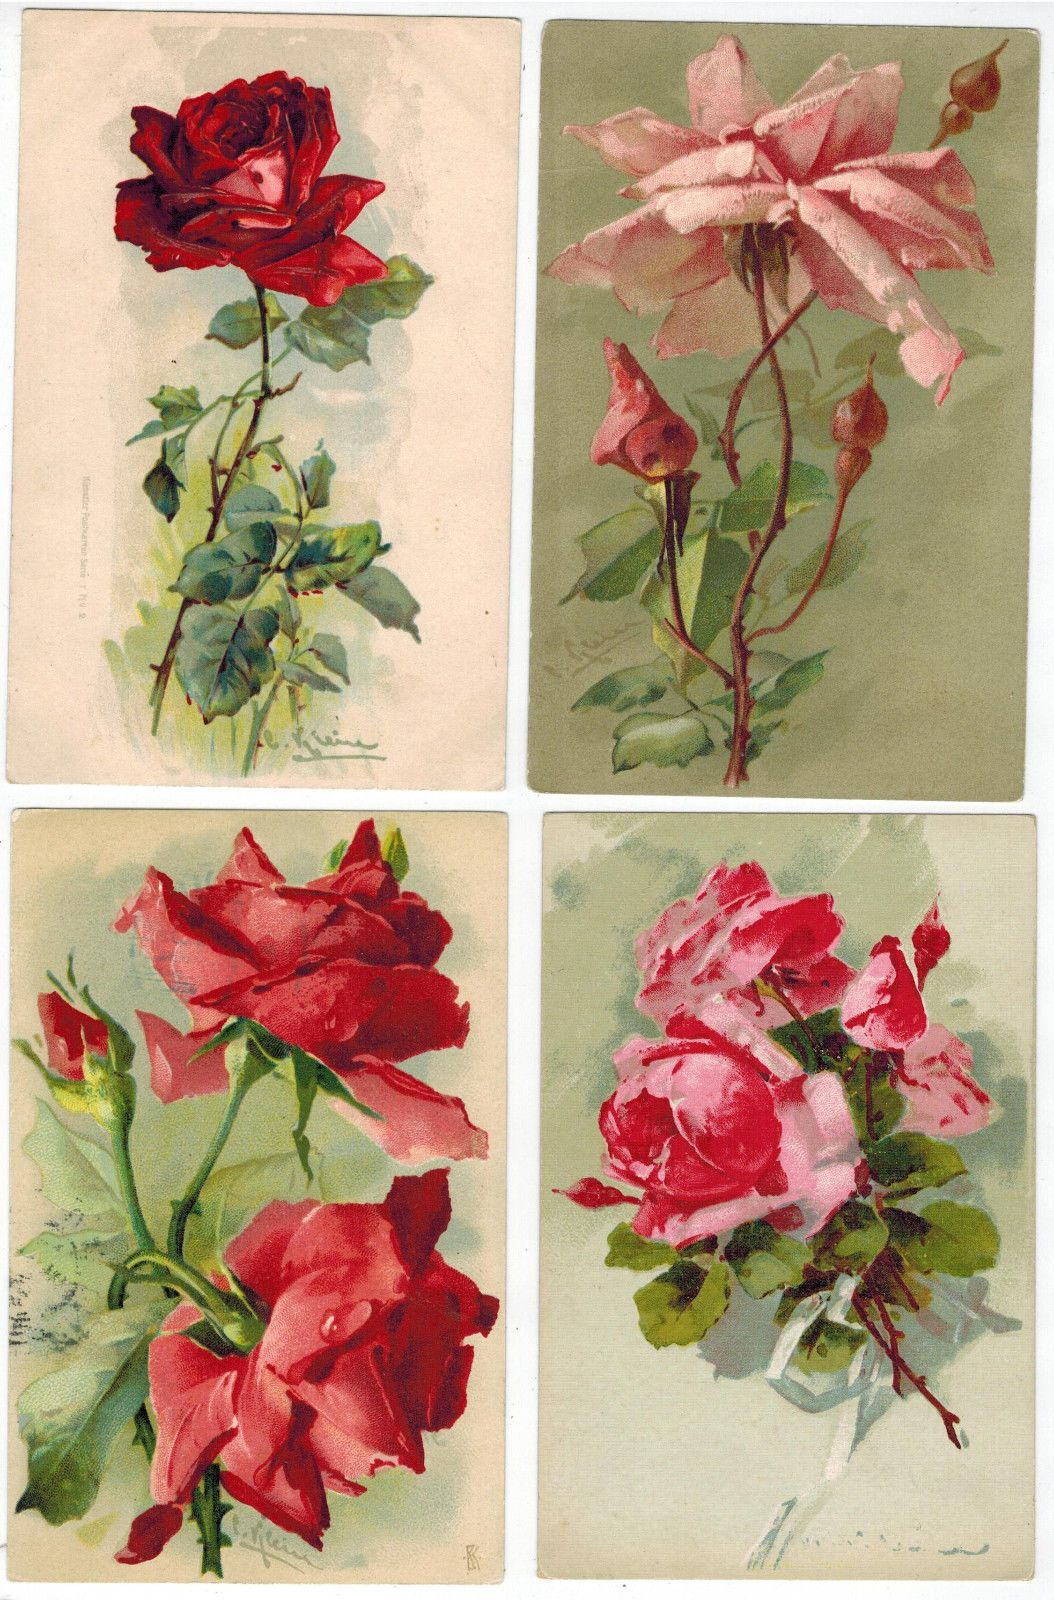 art cards of catherine klein roses issued in europe from